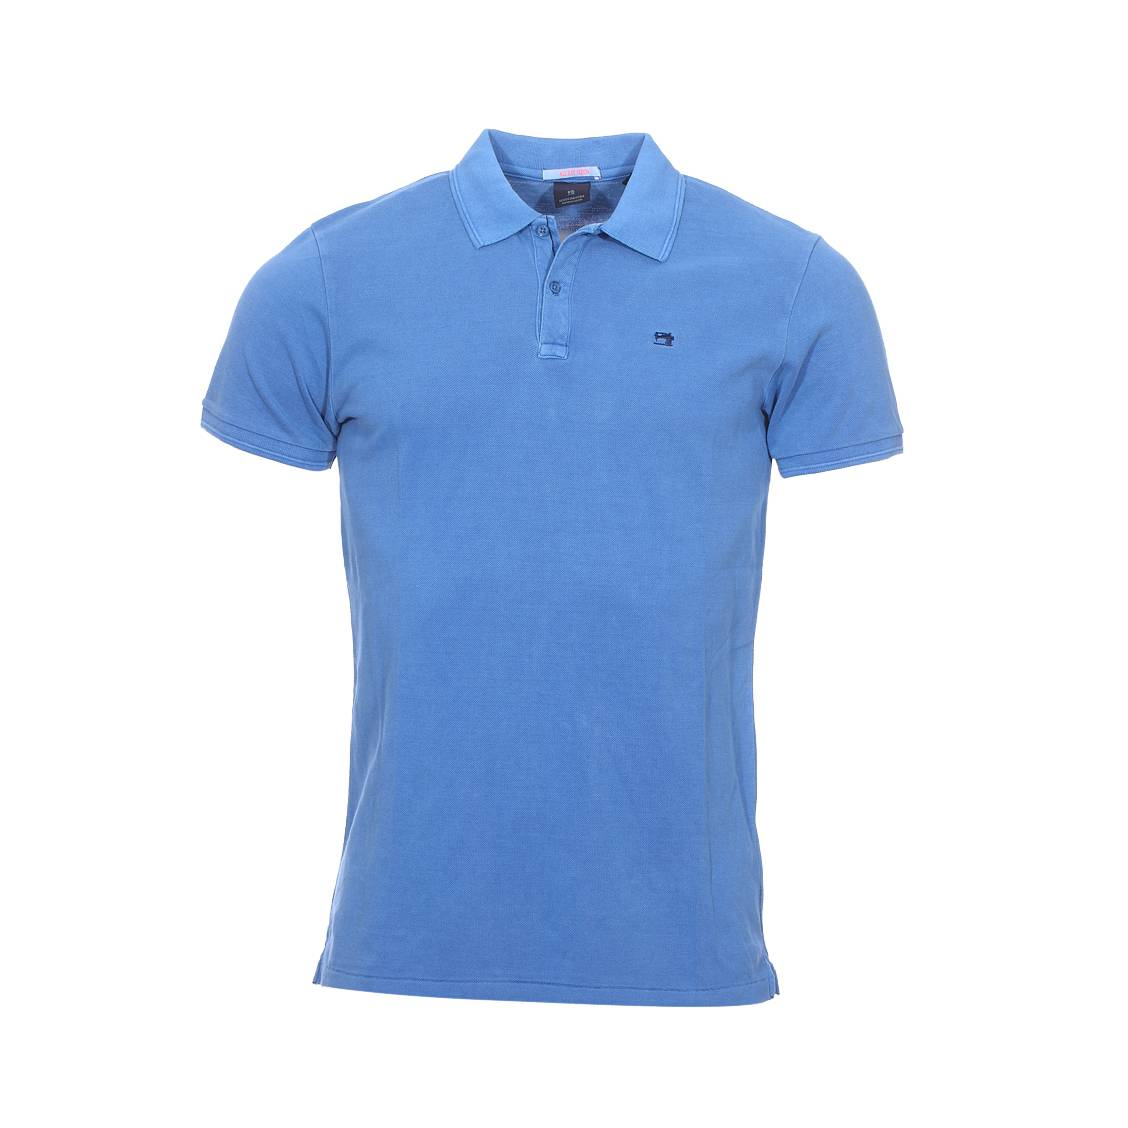 a9e9e09c8a53 Polo manches courtes Scotch and Soda en piqué de coton bleu indigo ...